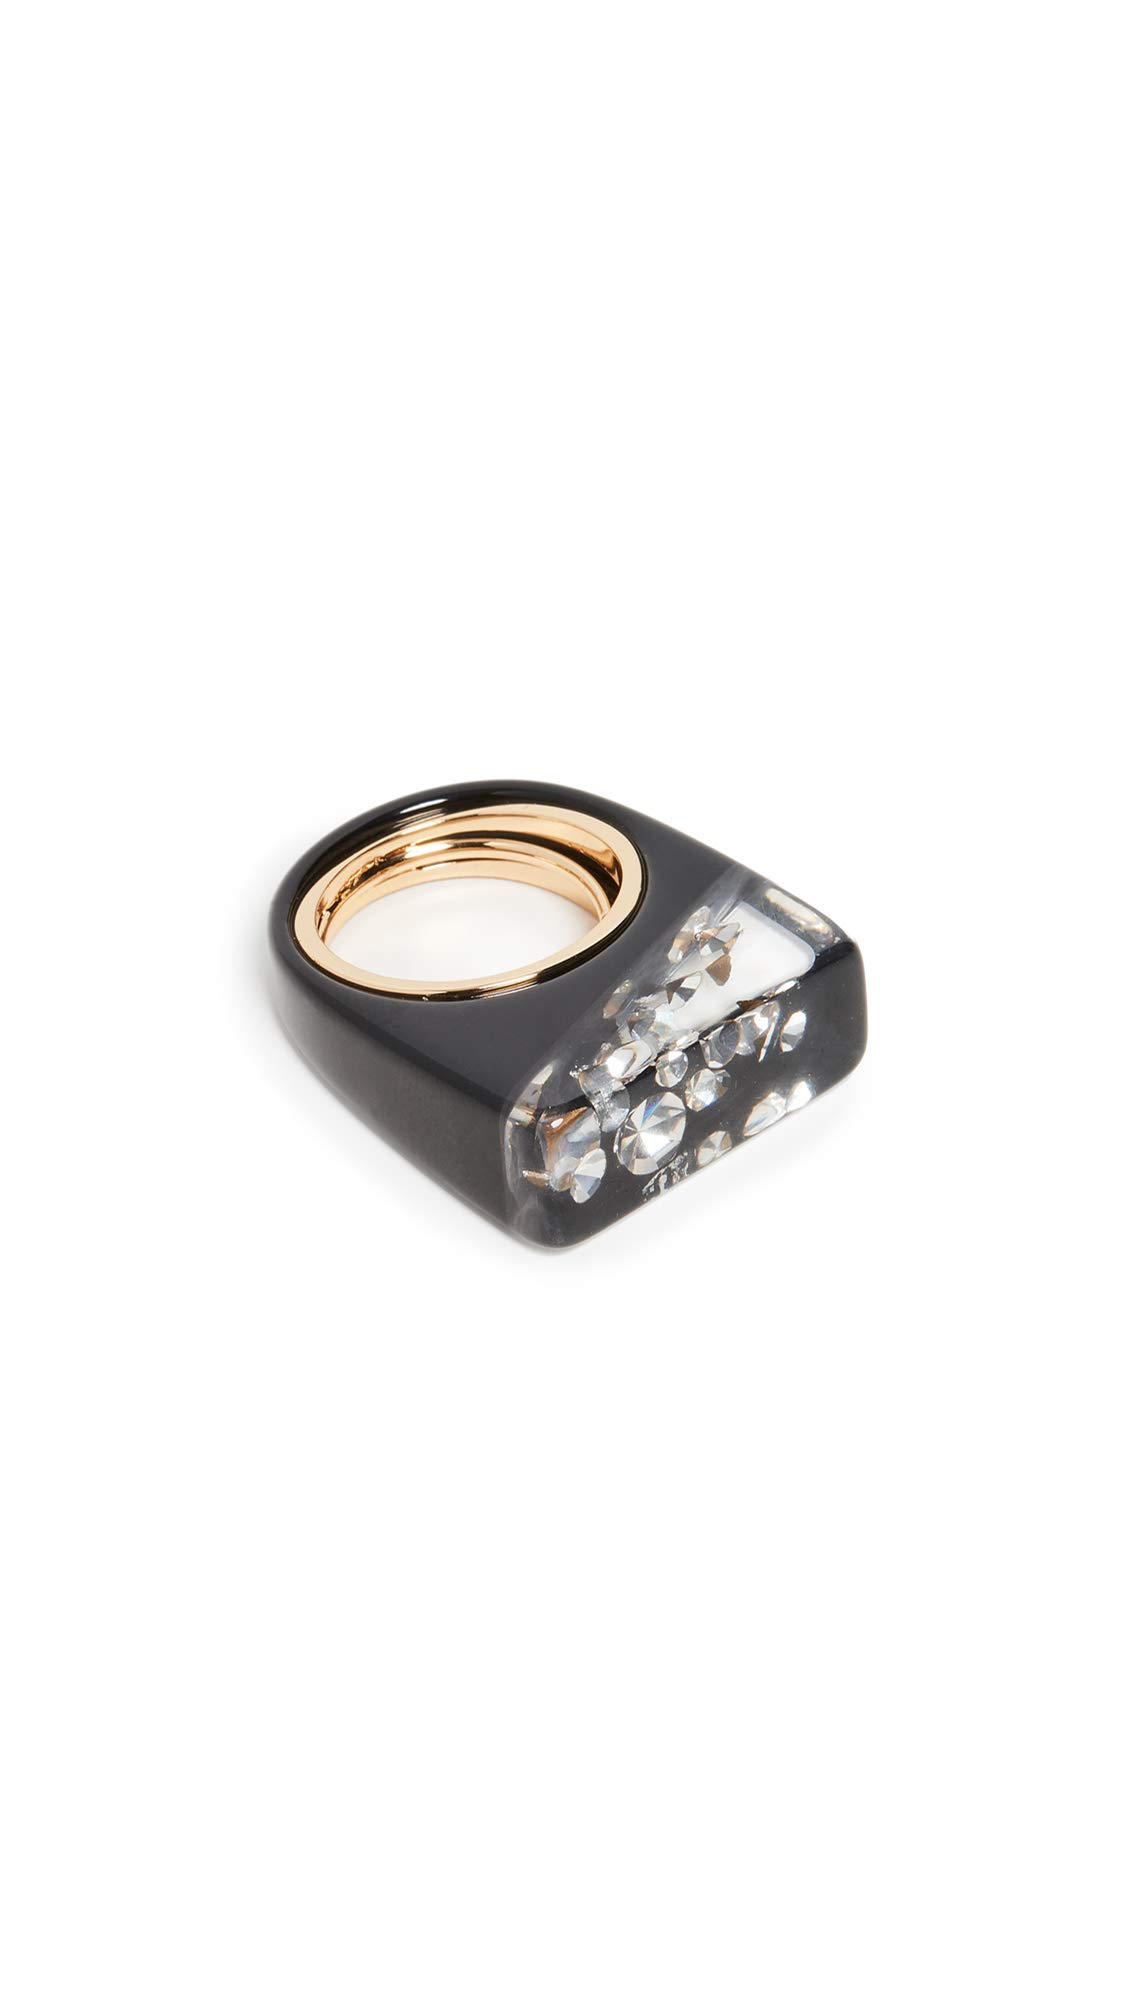 Marc Jacobs Women's Rectangle Crystal Resin Ring, Black, One Size